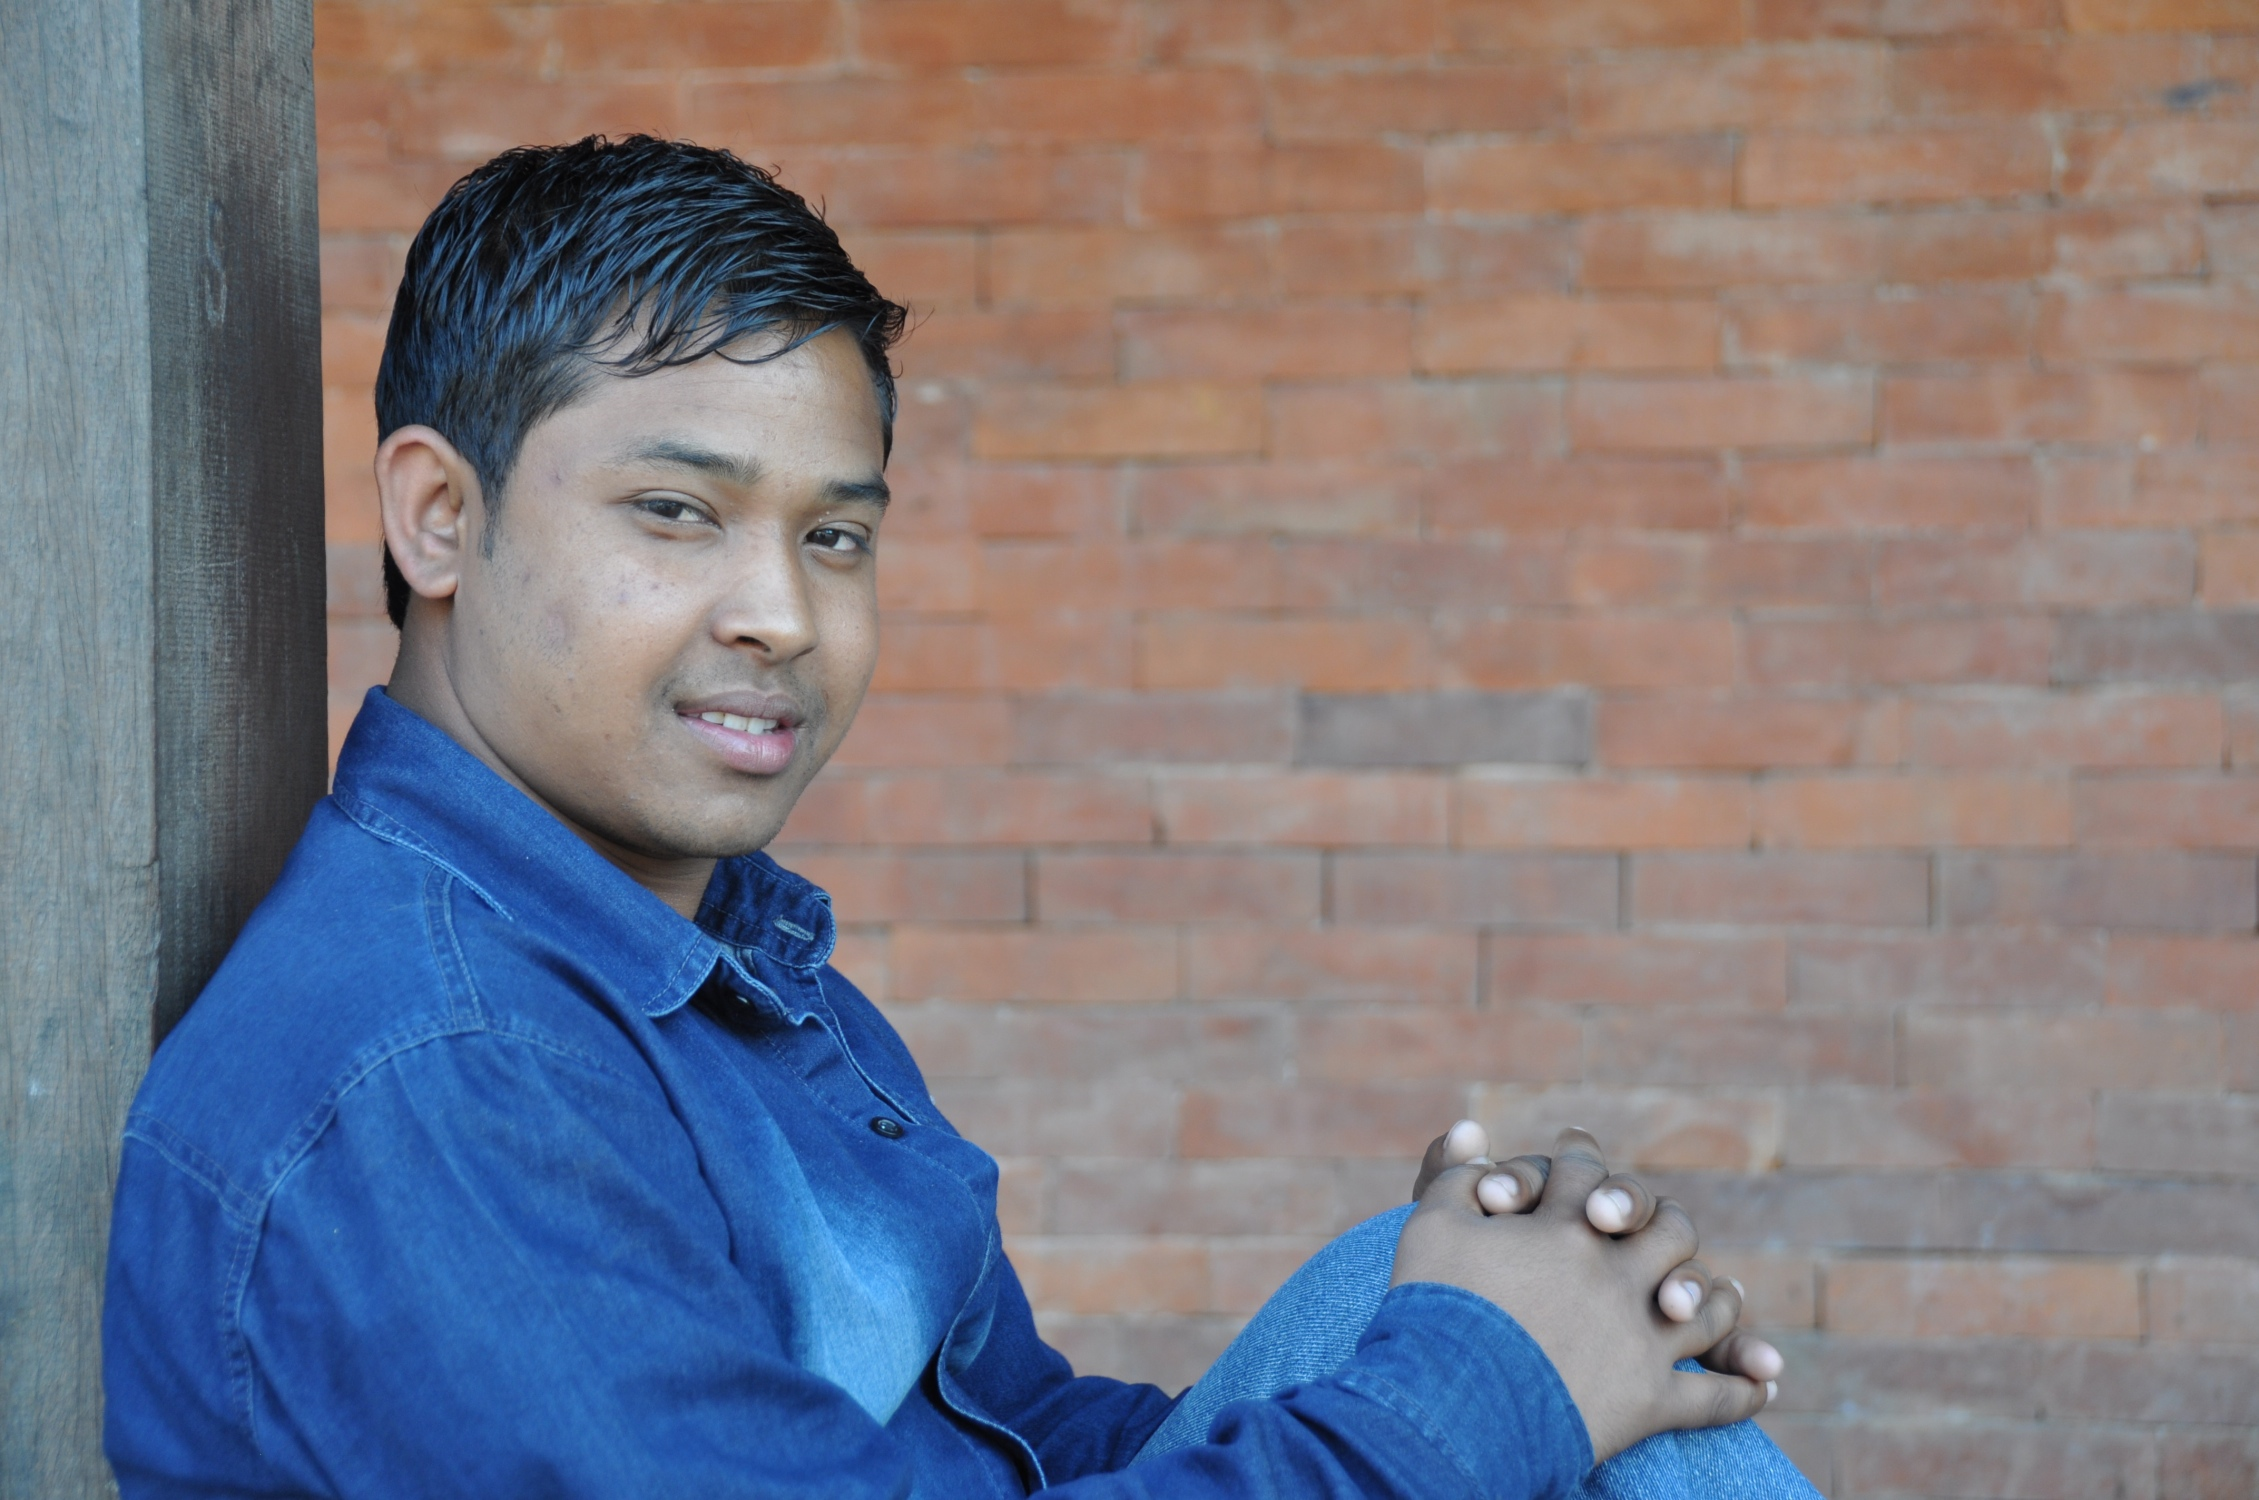 Raj    Raj is Nabin's older brother.  His dad died when he was very young and his stepfather was an alcoholic who beat the boys.  He ran away from home and got on a bus to Bhaktapur when he was eight years old.  He lived on the streets with other boys and would sneak into weddings and birthday parties to steal food. David found the two brothers playing in a temple and asked them if they wanted a place to stay, food, and to go to school.  Raj ended up going the the children's home with David that day; he was ten years old.  He said that giving up the glue sniffing was easy, but not being able to come and go as he pleased was the hard part.  He eventually settled down and was able to attend school.  Raj plays bass guitar and helps with the music in church.  He graduated from school in 2013 and is studying the tourism industry in college.